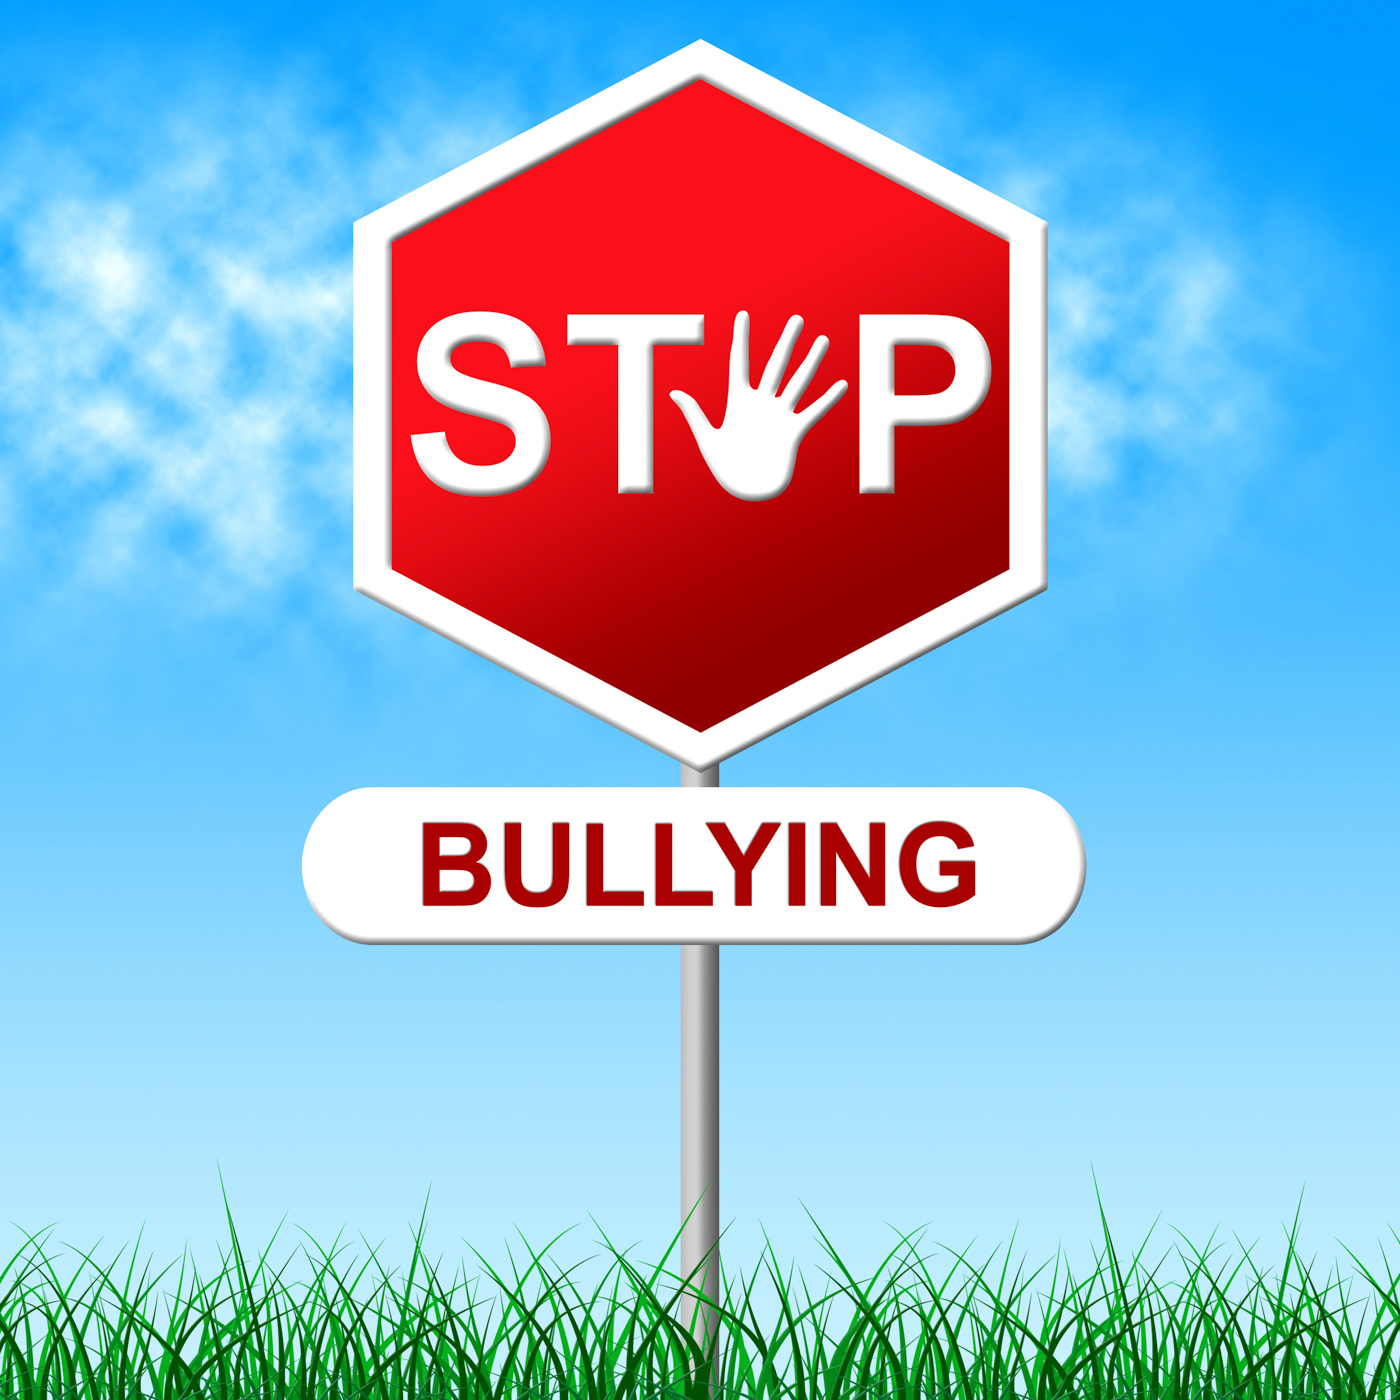 Stop Bullying Indicates Warning Sign And Caution, Bully, Prohibit, Warning, Tyrannize, HQ Photo